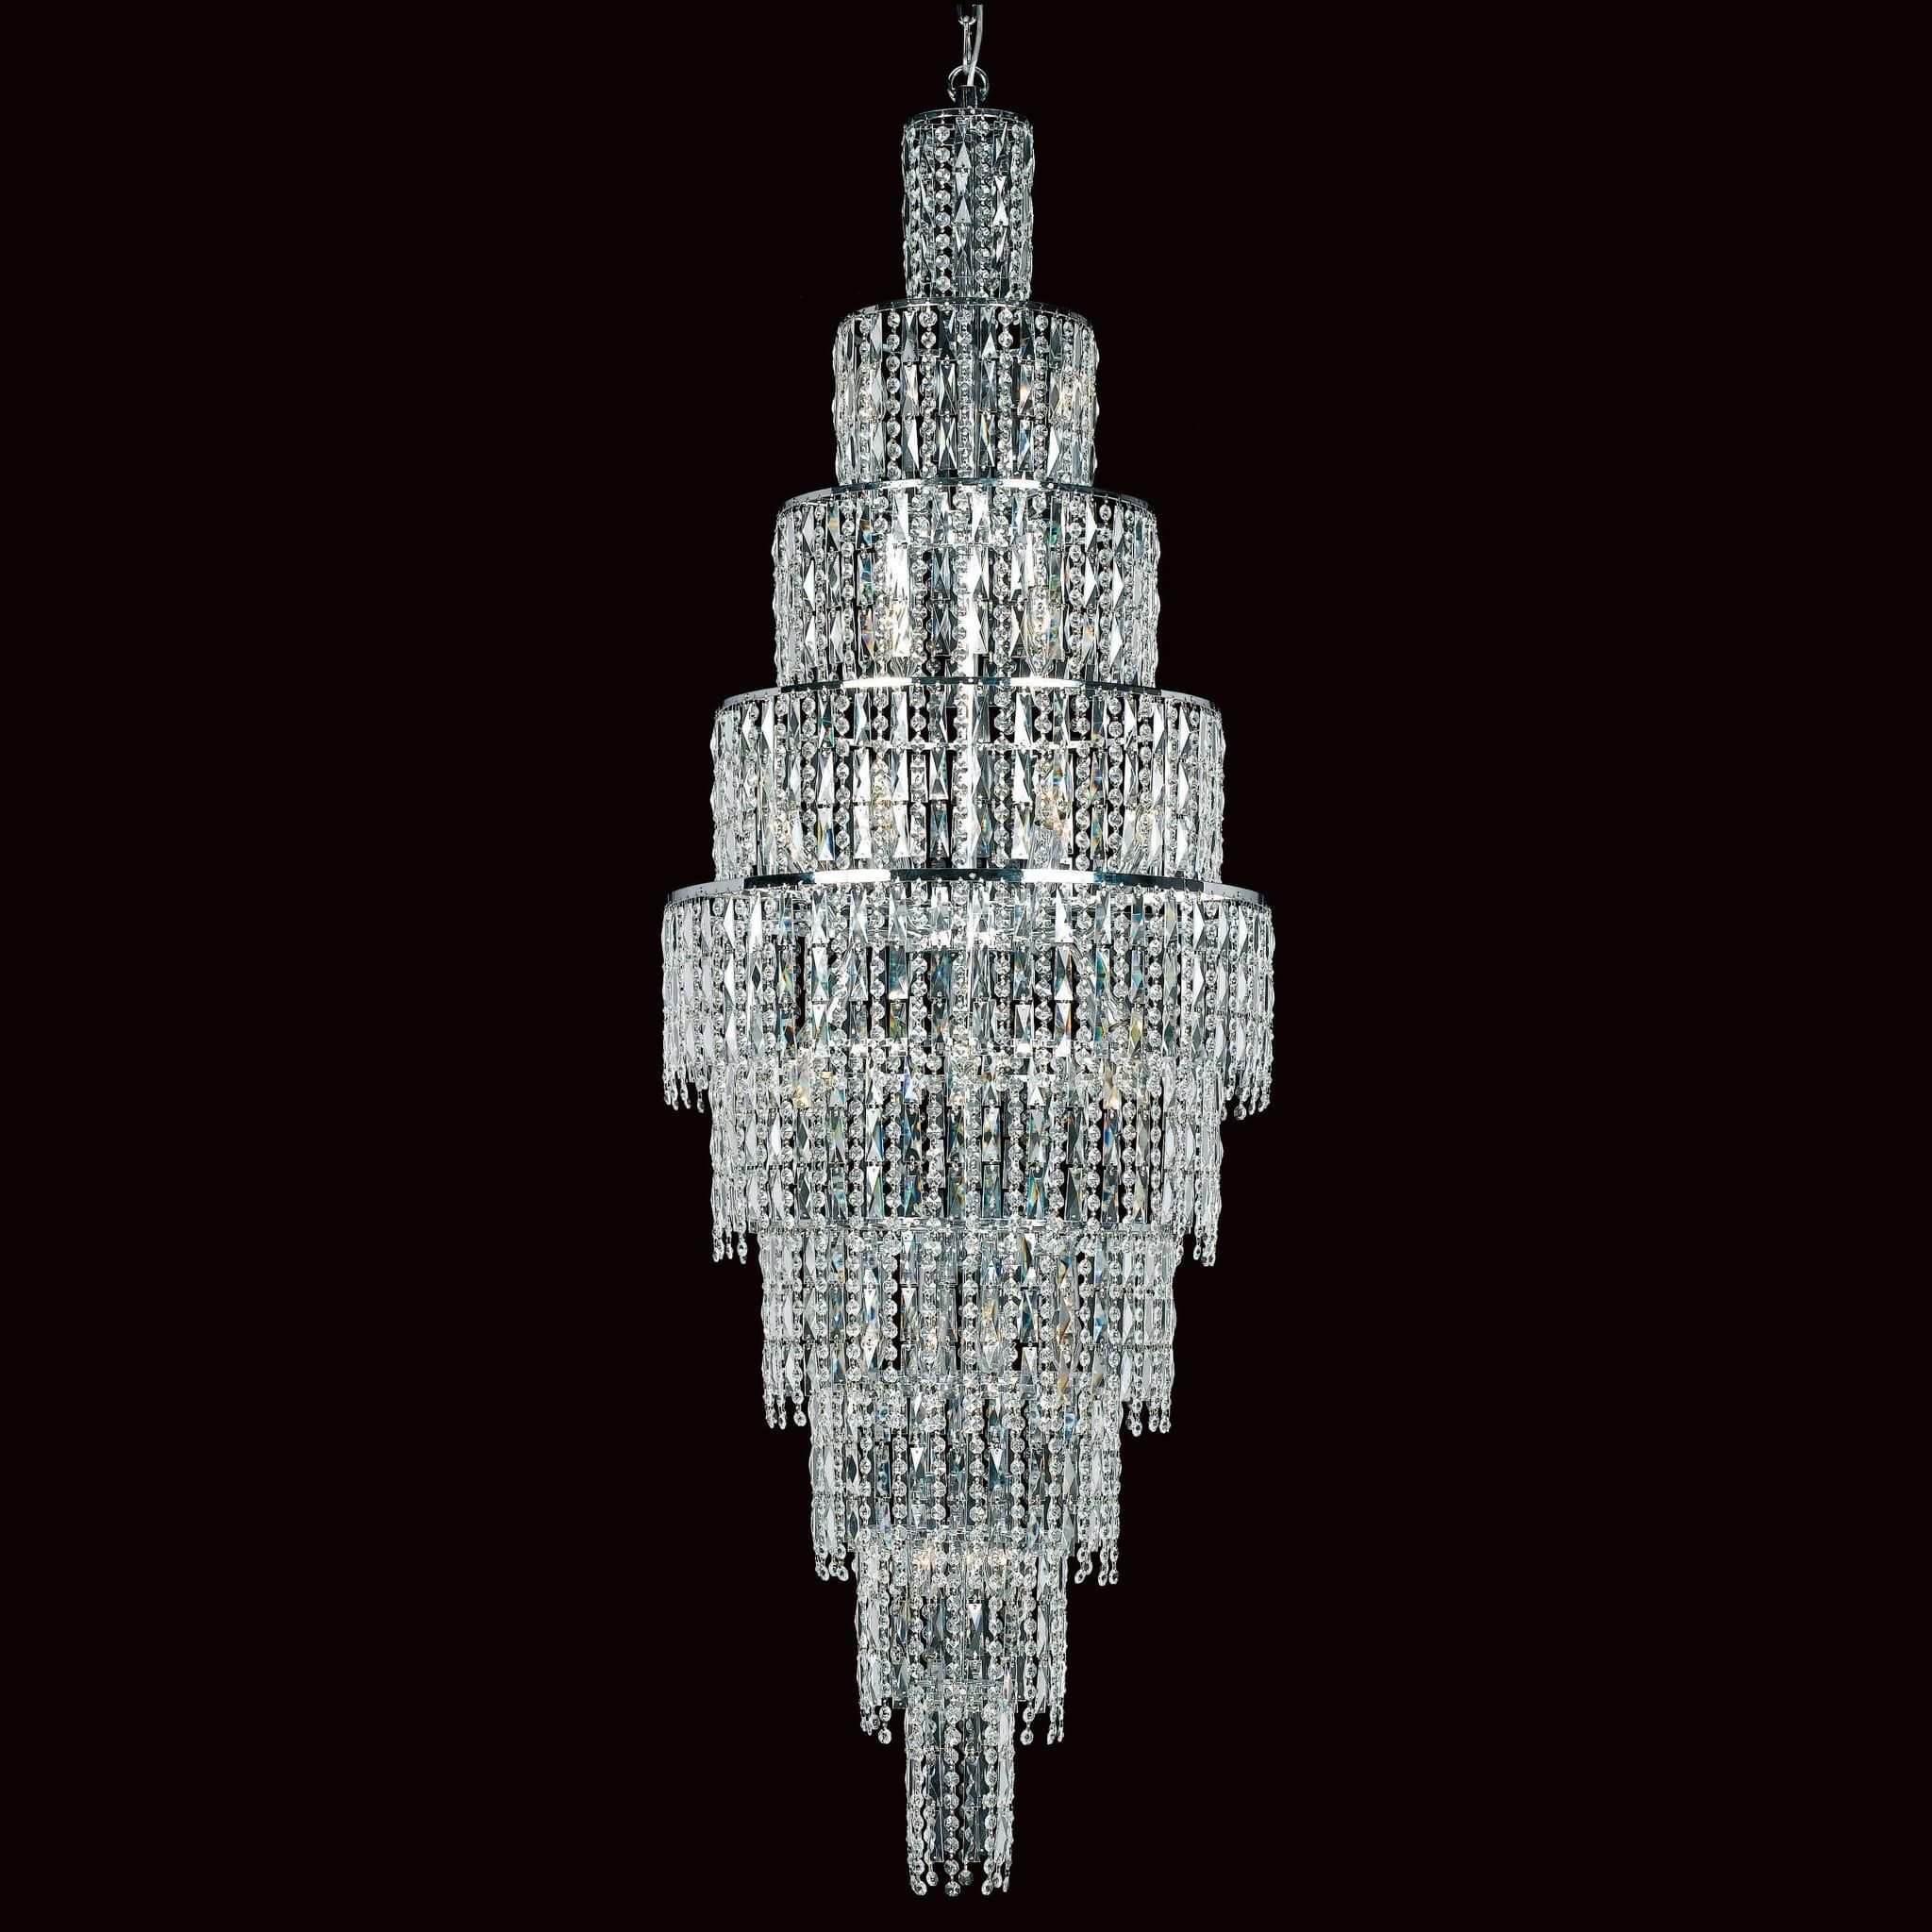 Impex new york 24 light glass icicle crystal chandelier cf03220 24 lights aloadofball Image collections